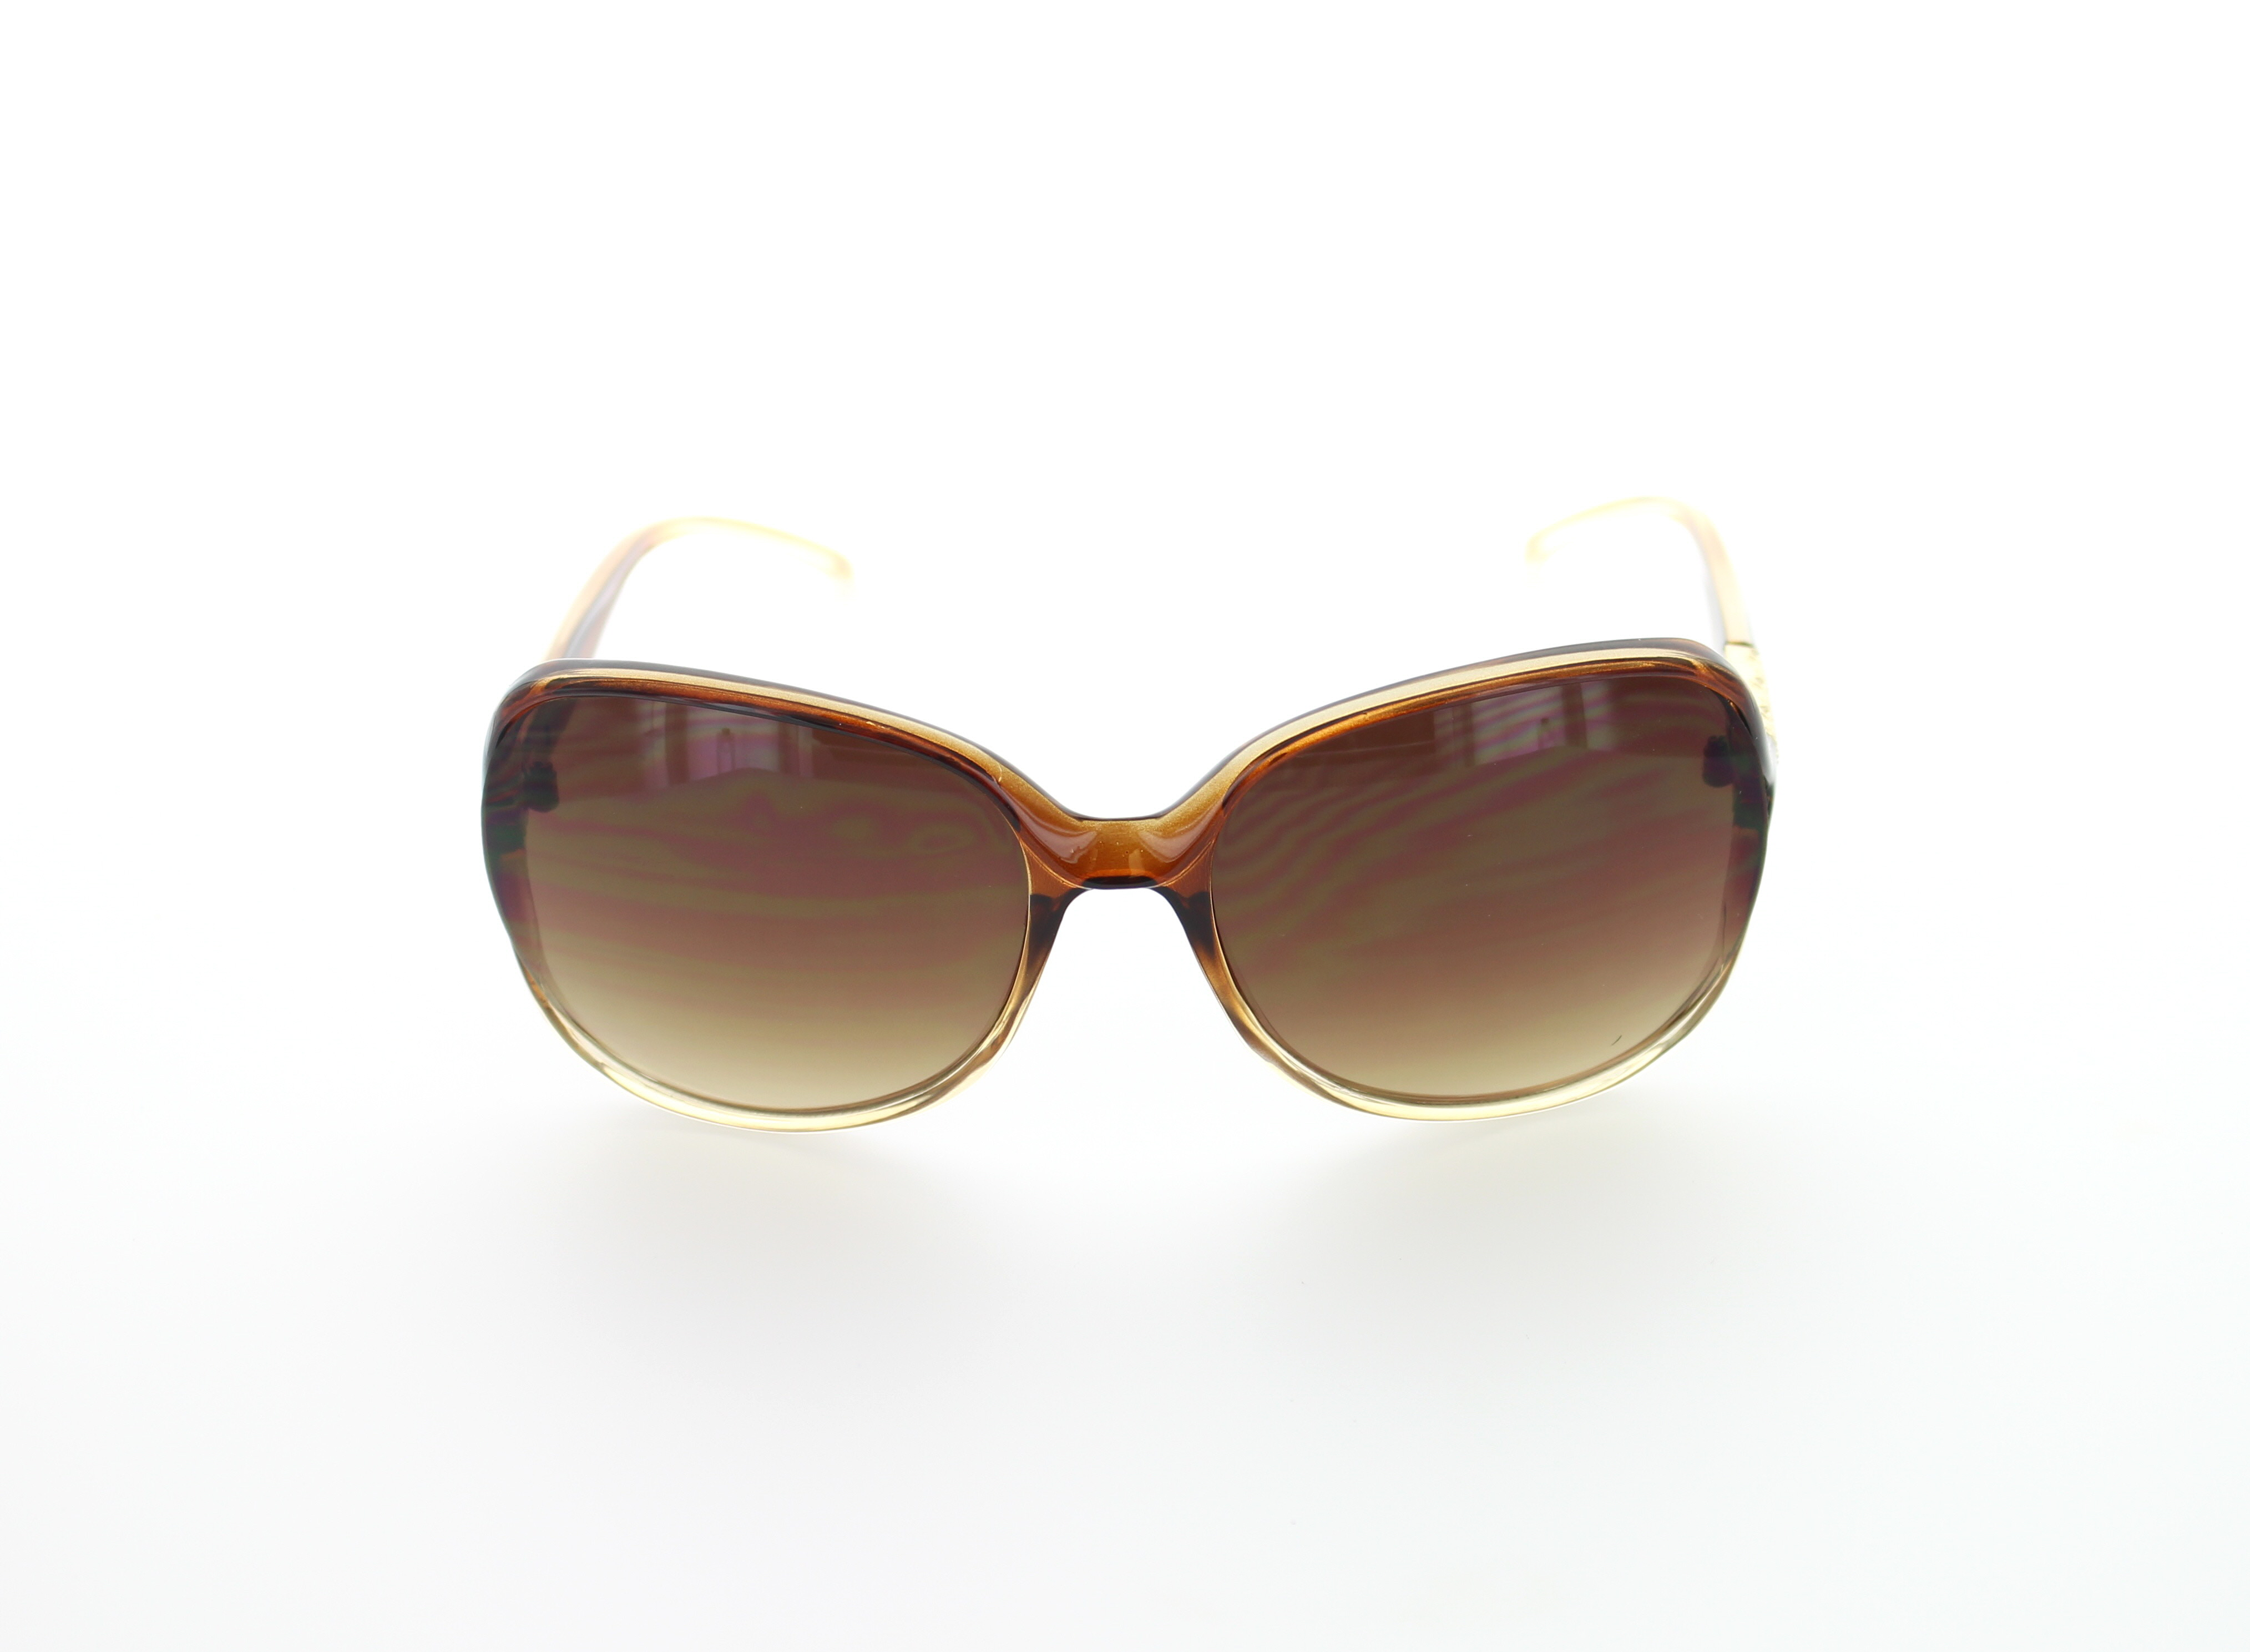 9910f2a164 All Sunglasses Owned By Same Company